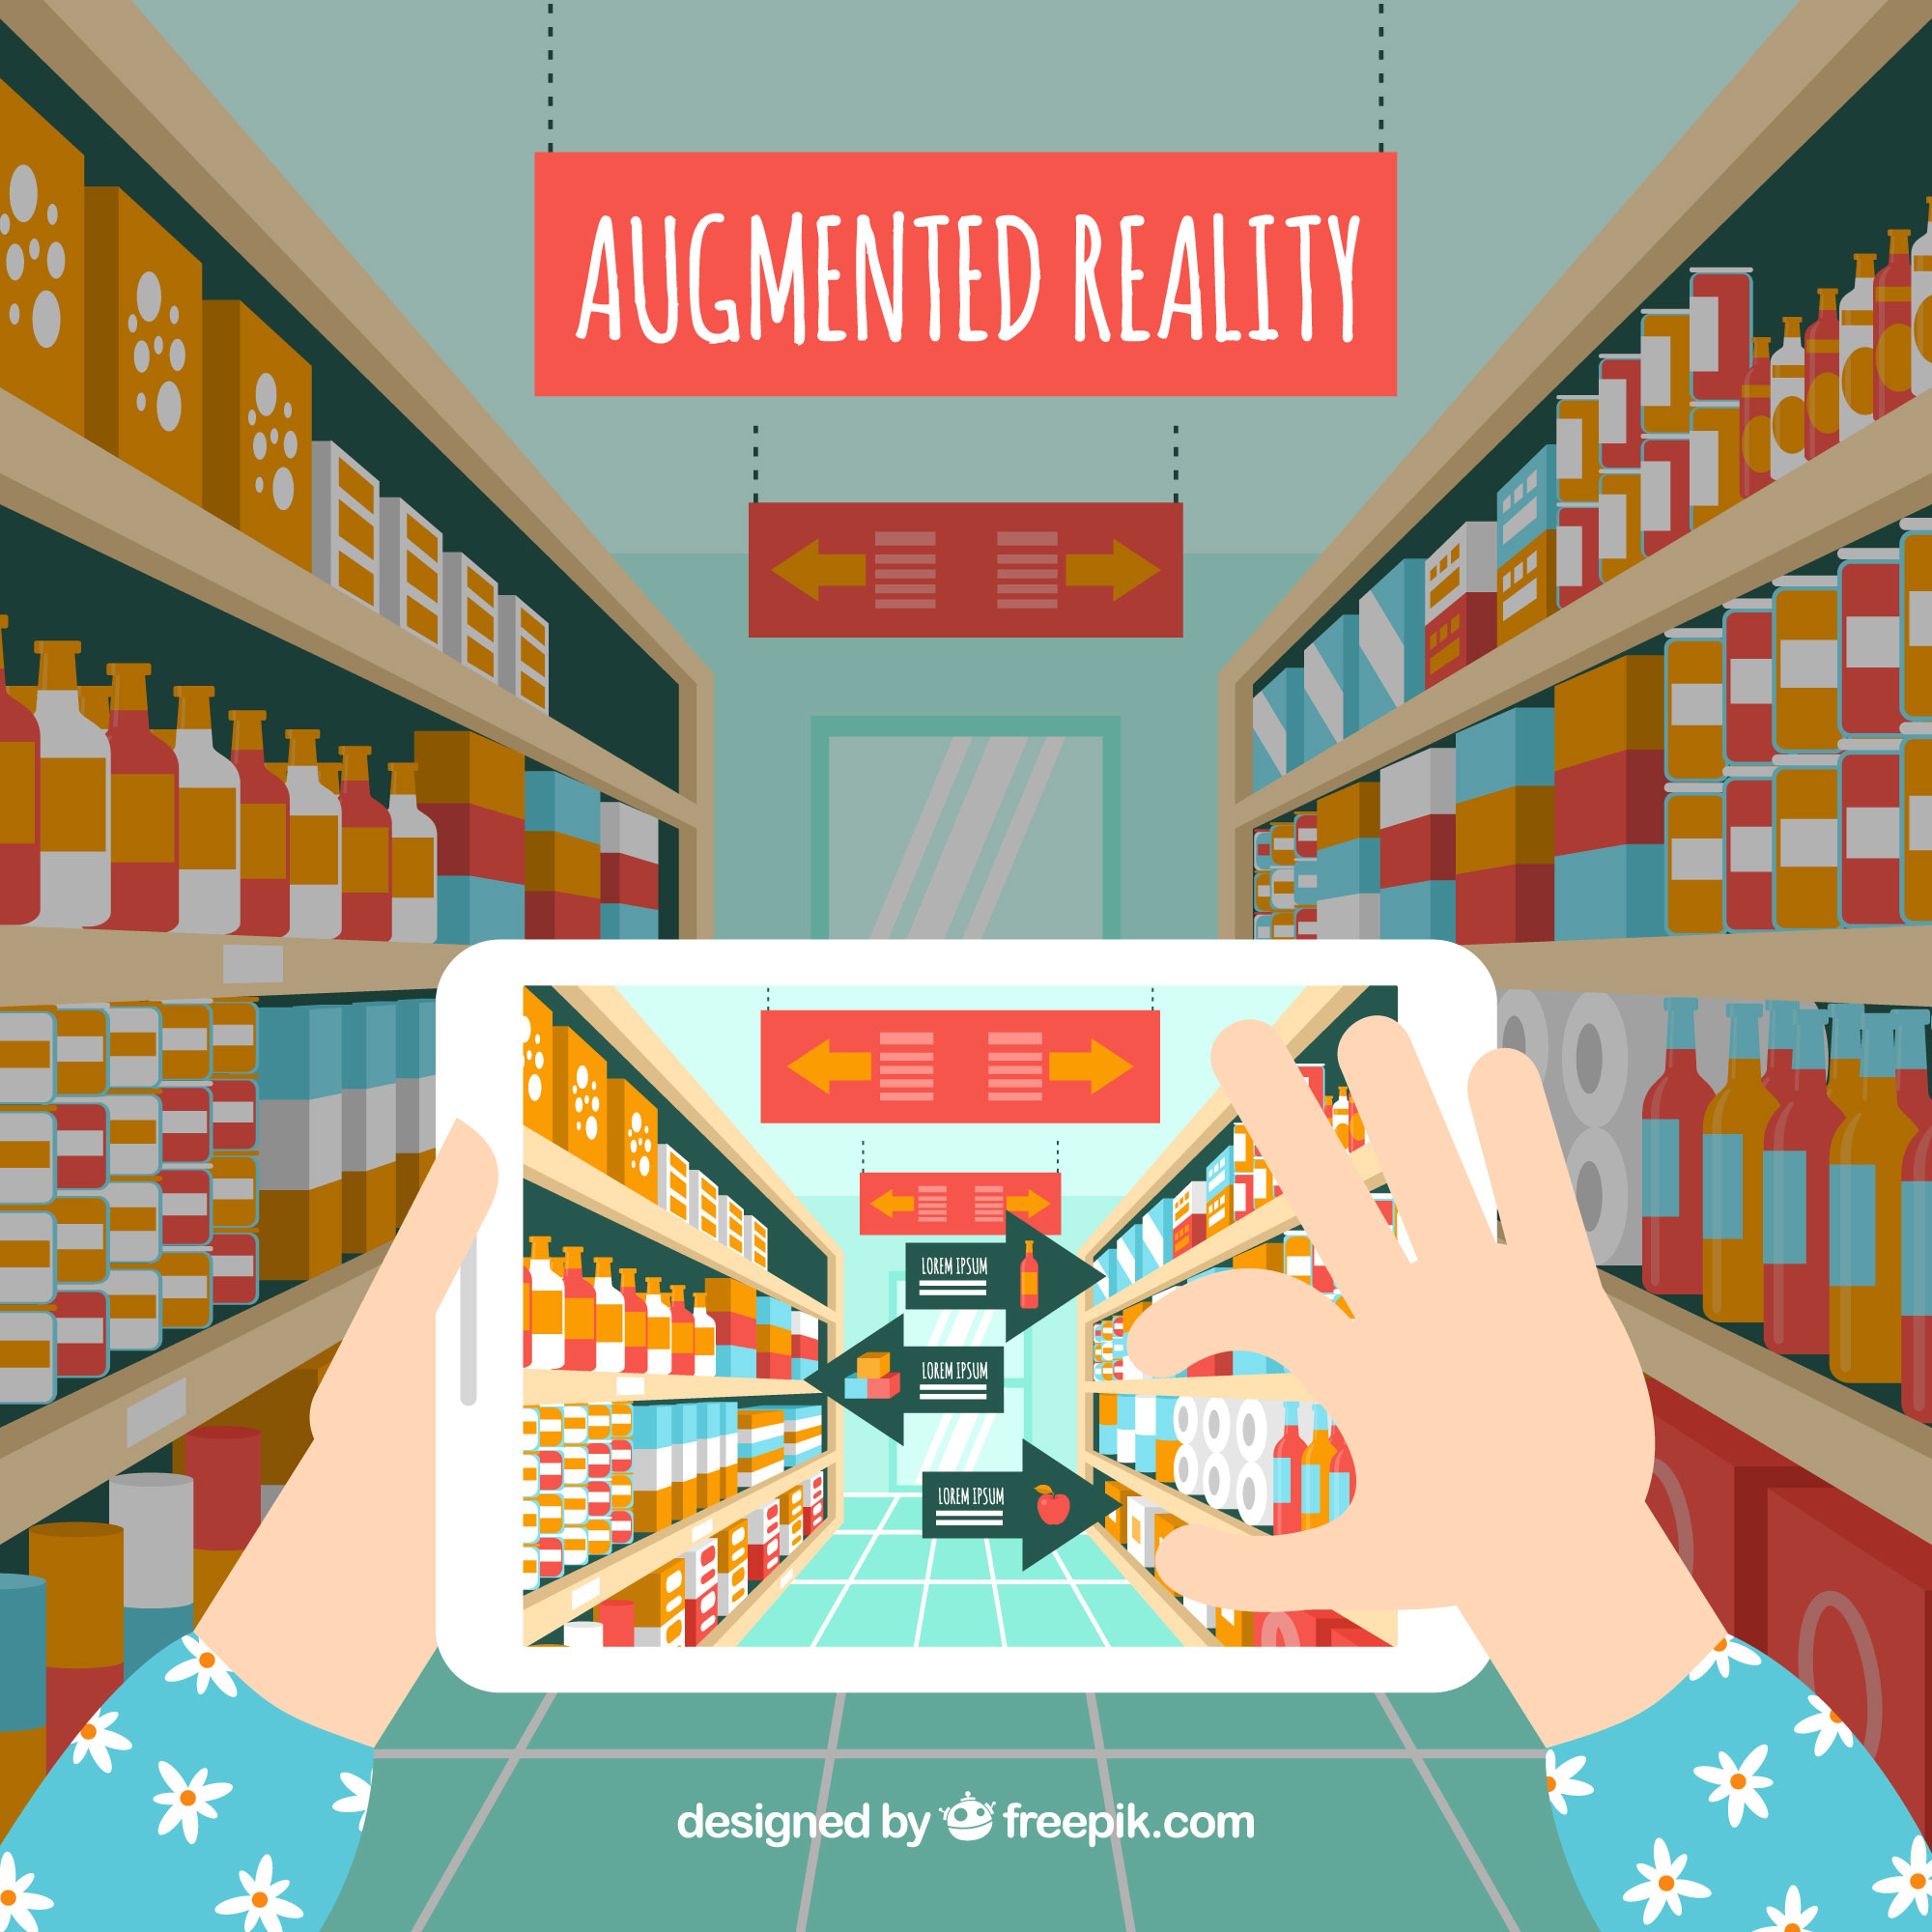 How AR and VR Are Creating Unique Online Shopping Experiences